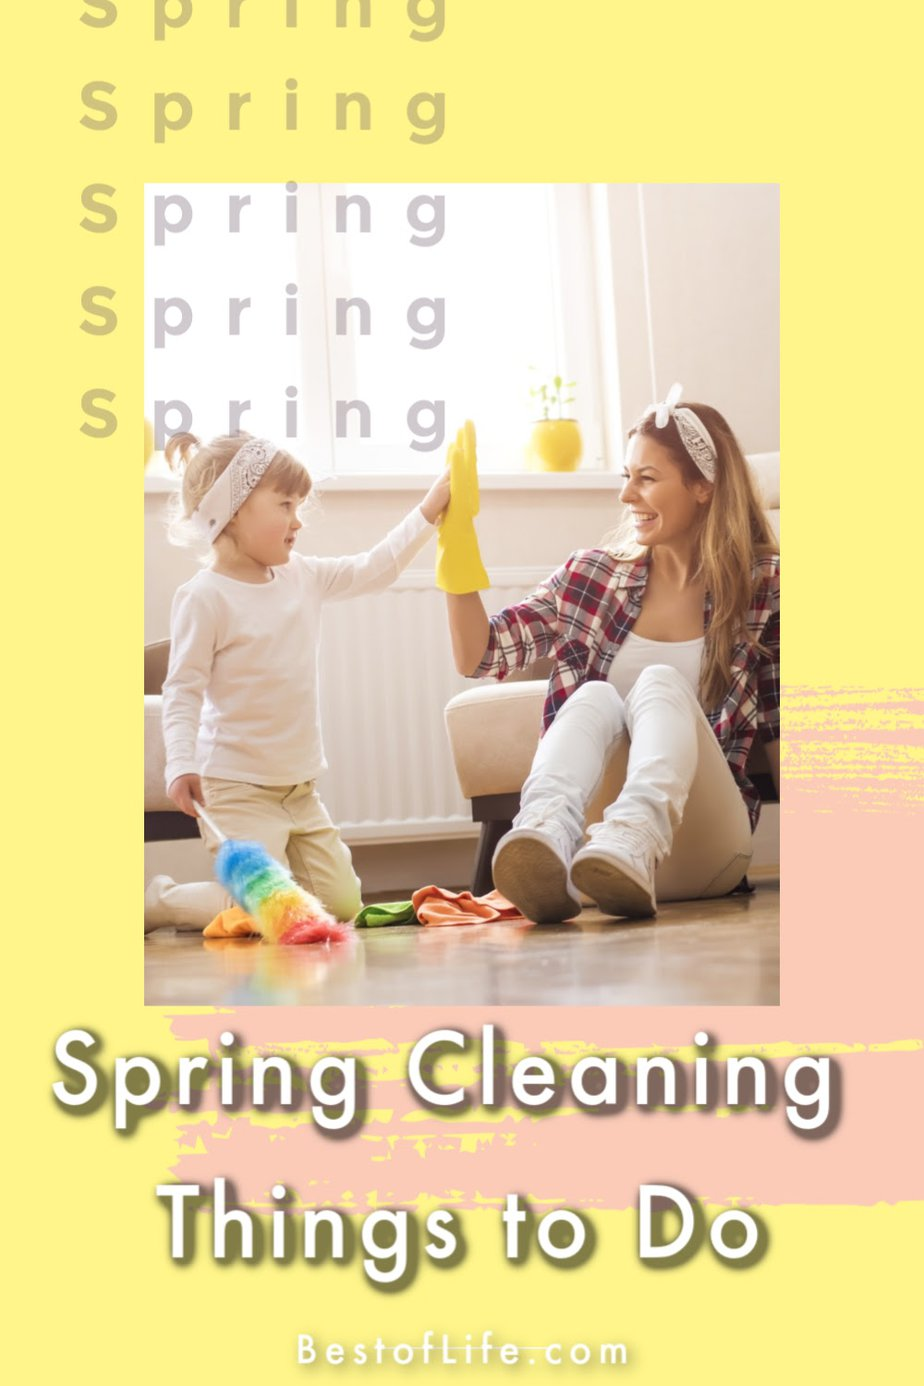 Knowing the key spring cleaning things to do will help you take this cleaning tradition and get the most out of it for your lifestyle. Spring Cleaning Checklist | Spring Cleaning Hacks | Spring Cleaning Schedules | Spring Cleaning Checklist Declutter | Things to do for Spring Cleaning | Organization Tips | Cleaning Checklists #springcleaning #tips via @thebestoflife